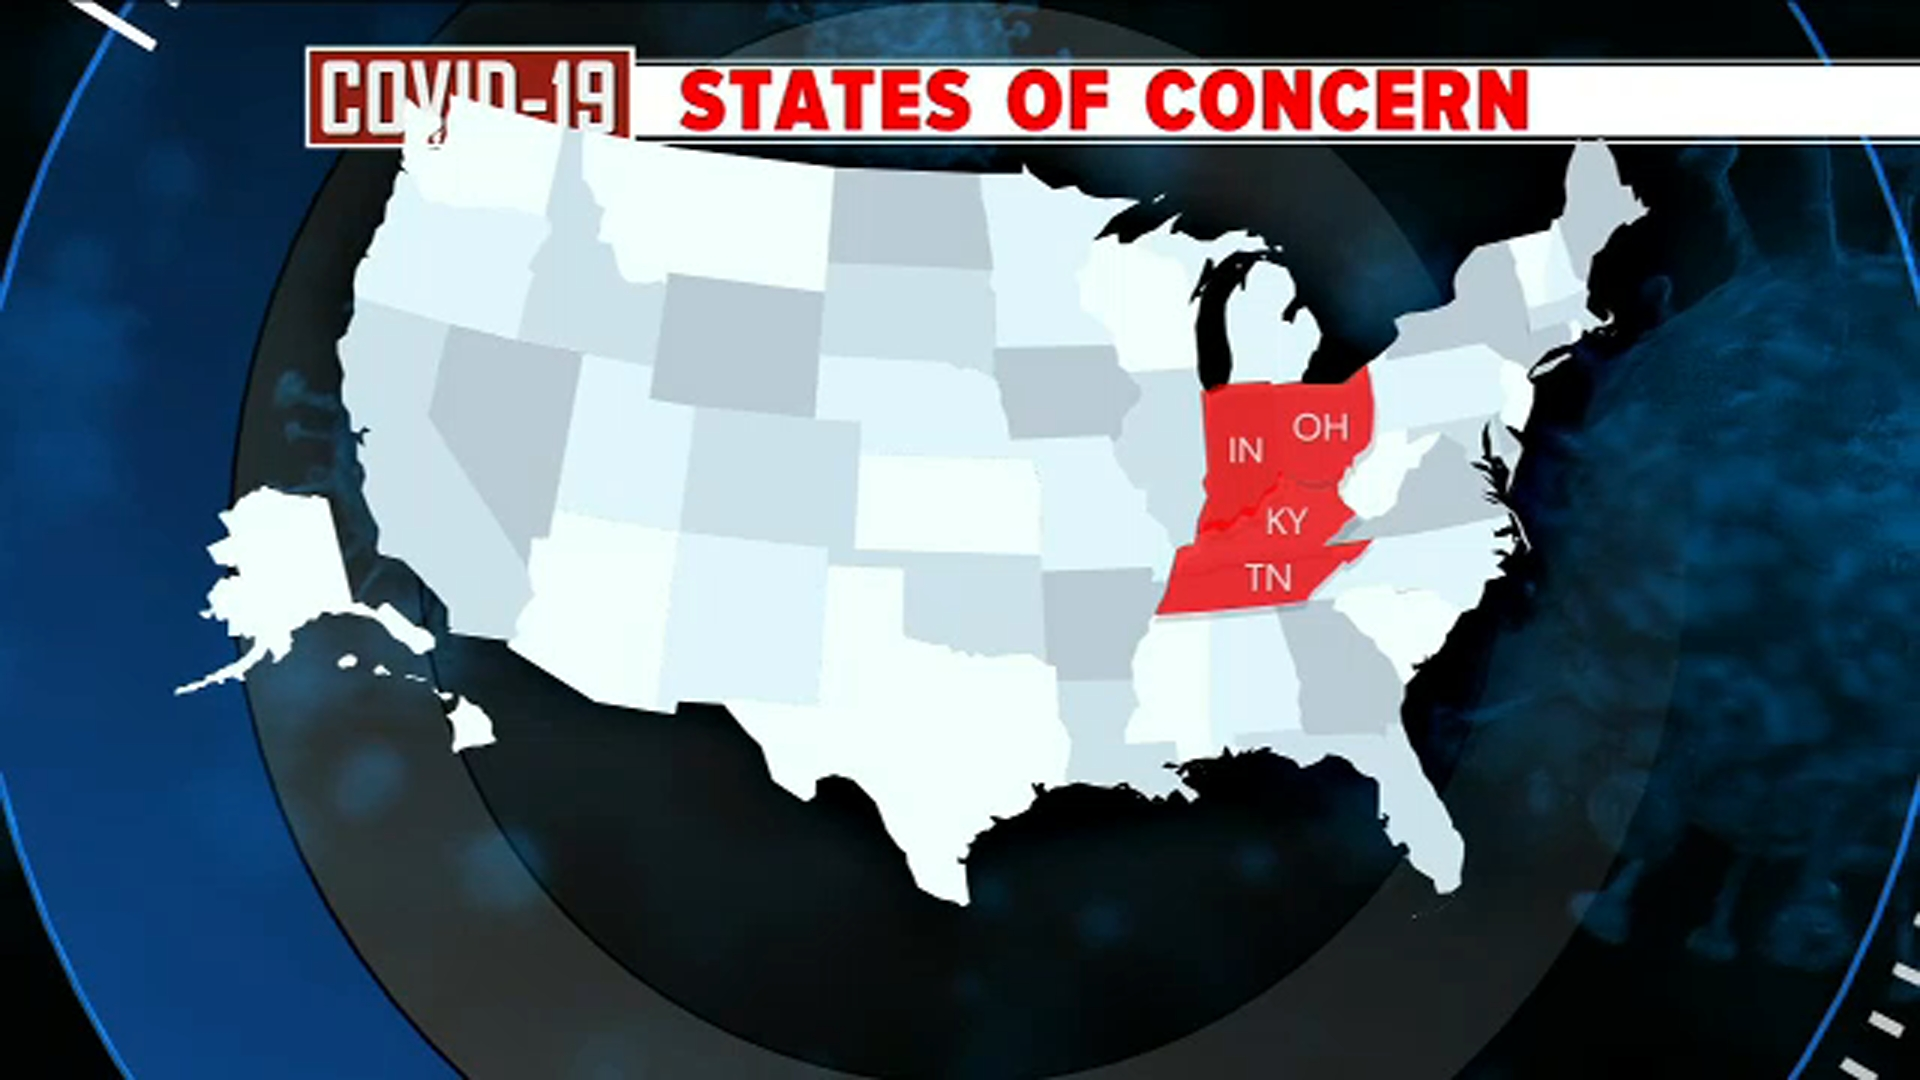 COVID-19 Updates: Concern over states in Midwest, South